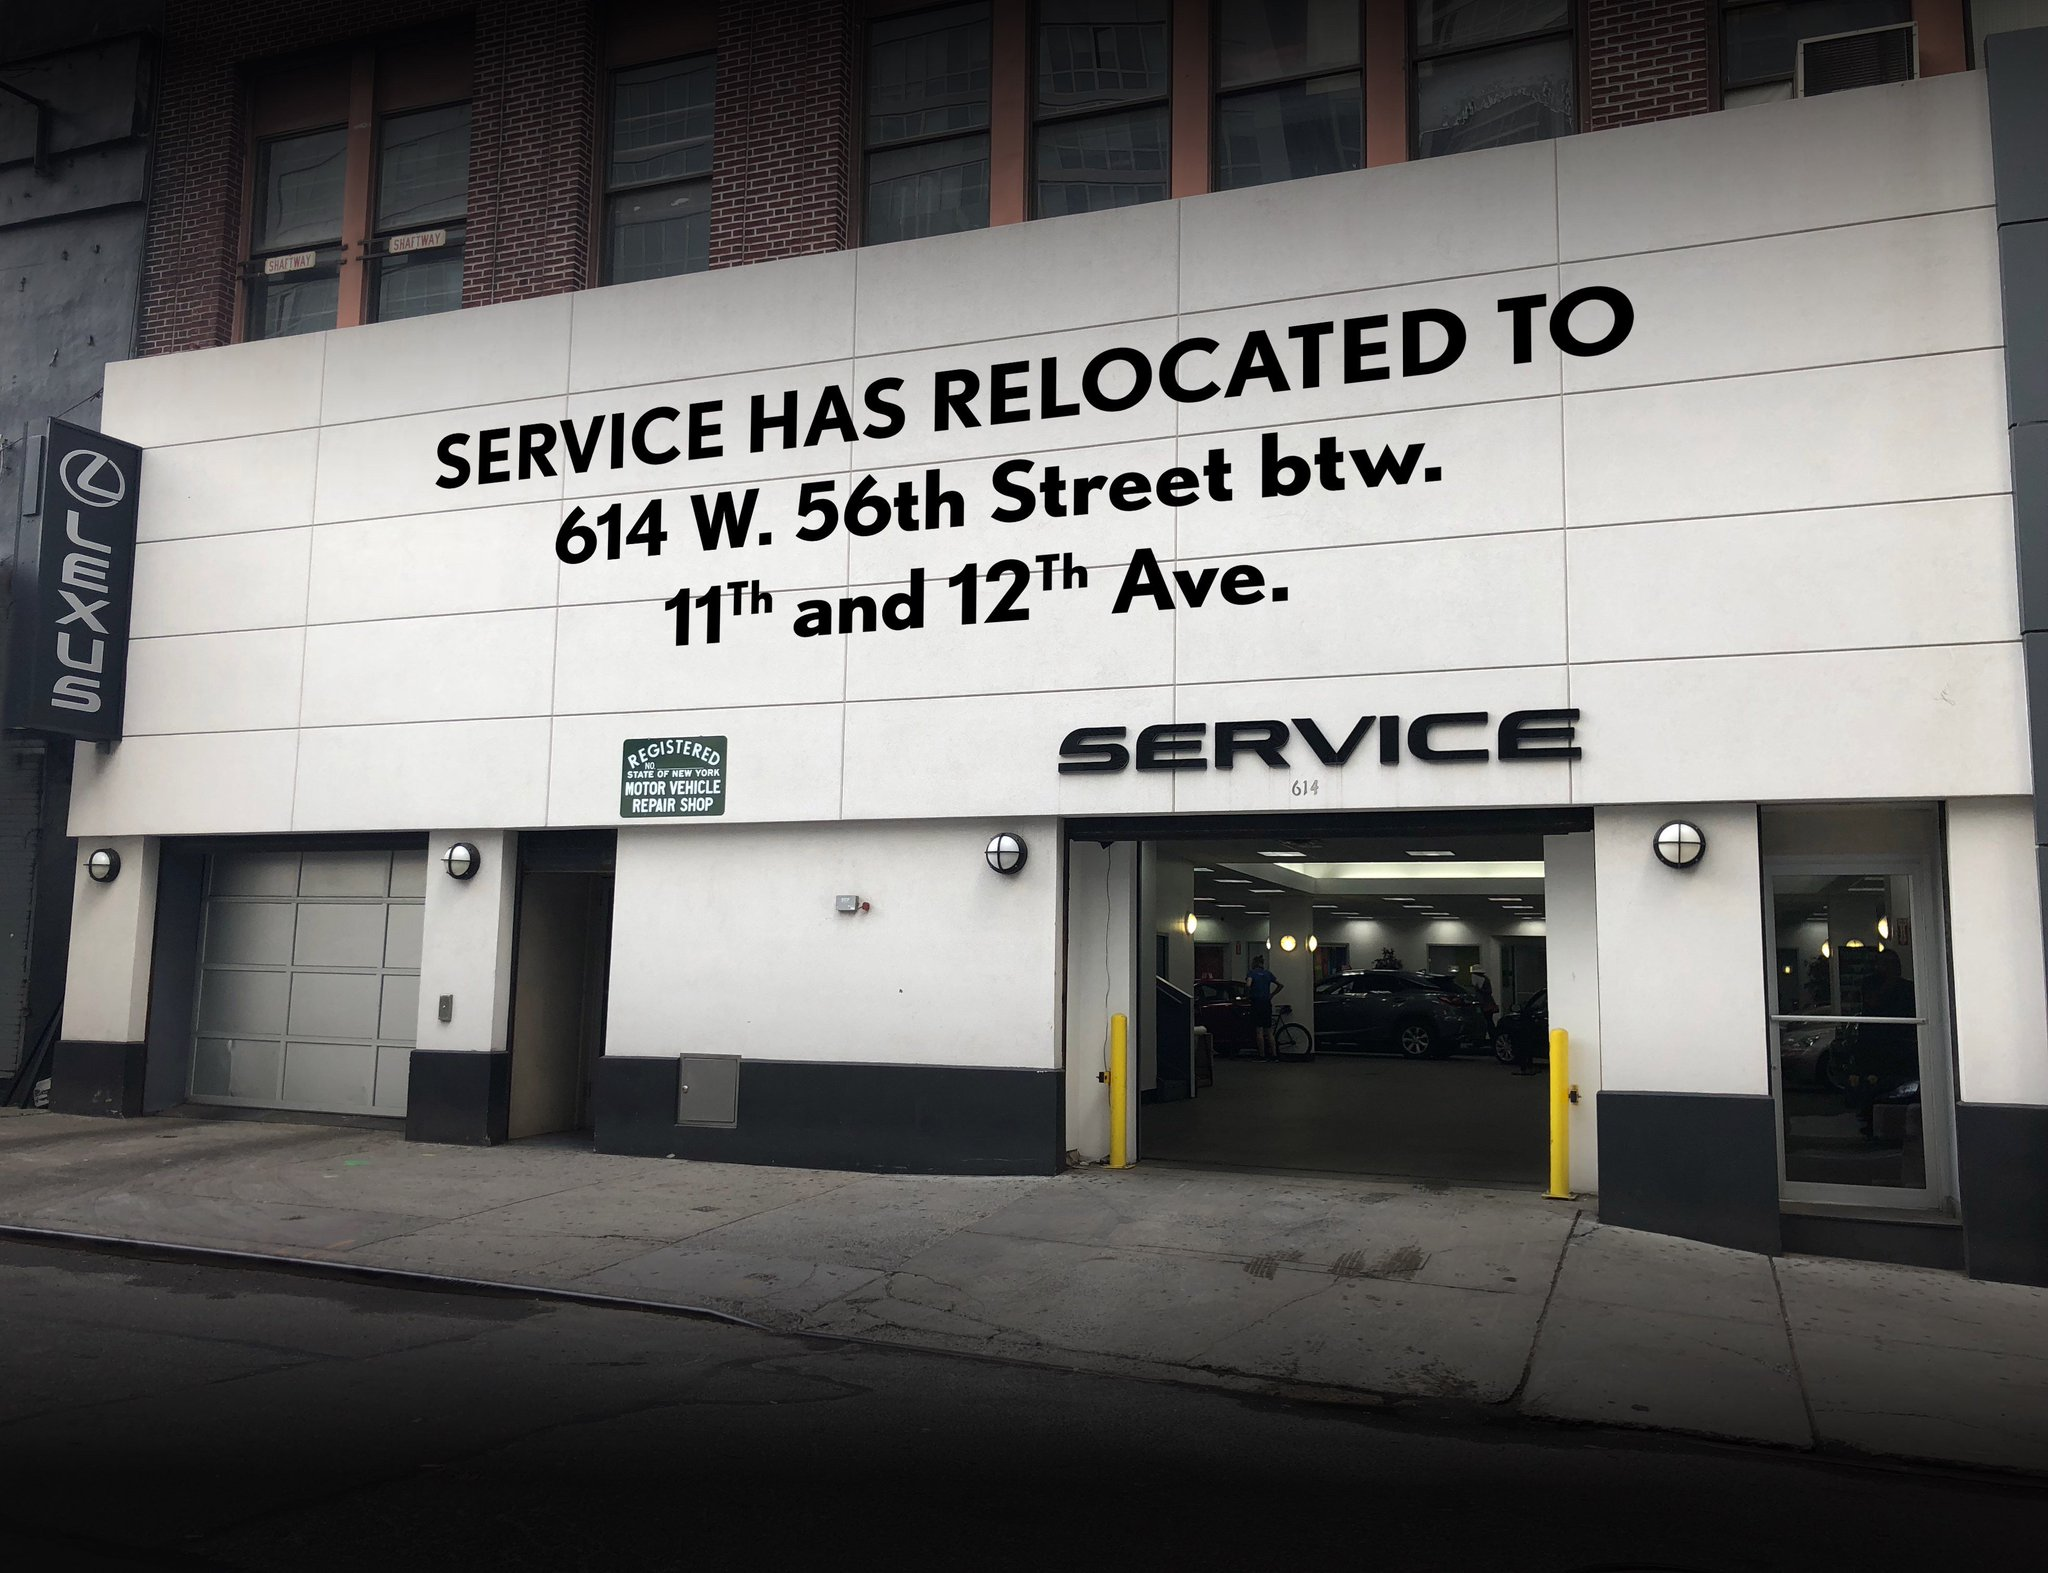 lexus of manhattan on twitter our service department is now located at 614 west 56th street btw 11th and 12th avenues reach us at 877 385 8761 to schedule an appointment today https t co kjjhetabxp lexus of manhattan on twitter our